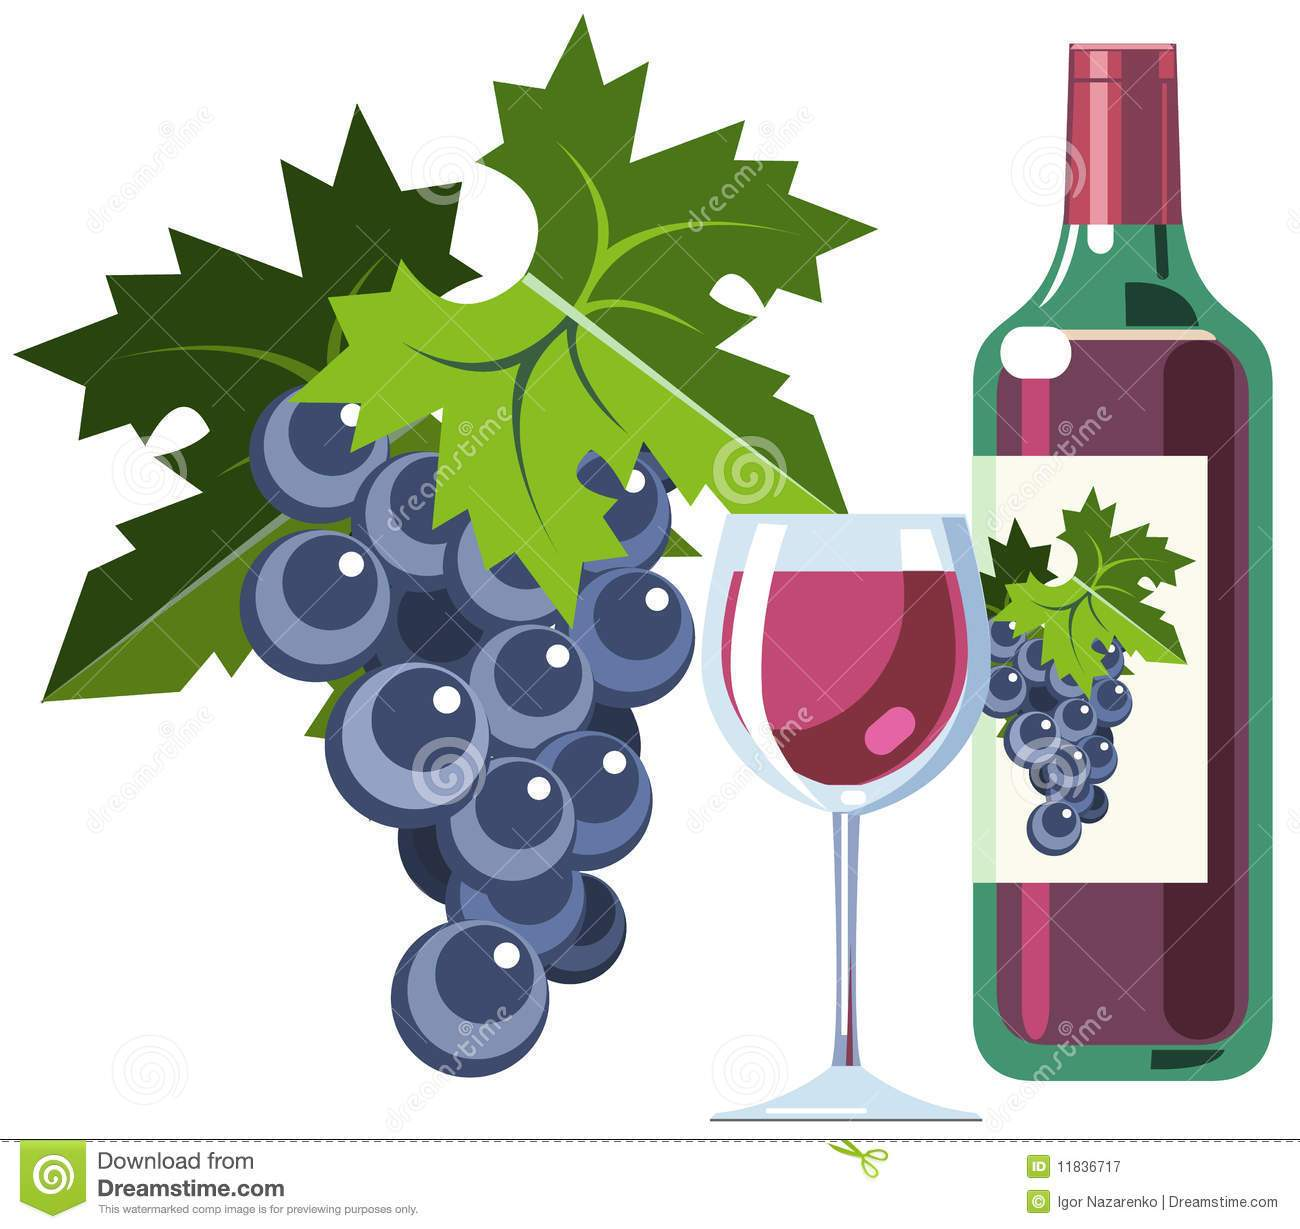 Wine and grapes clipart clipart free stock Wine glass and grapes clipart 7 » Clipart Portal clipart free stock